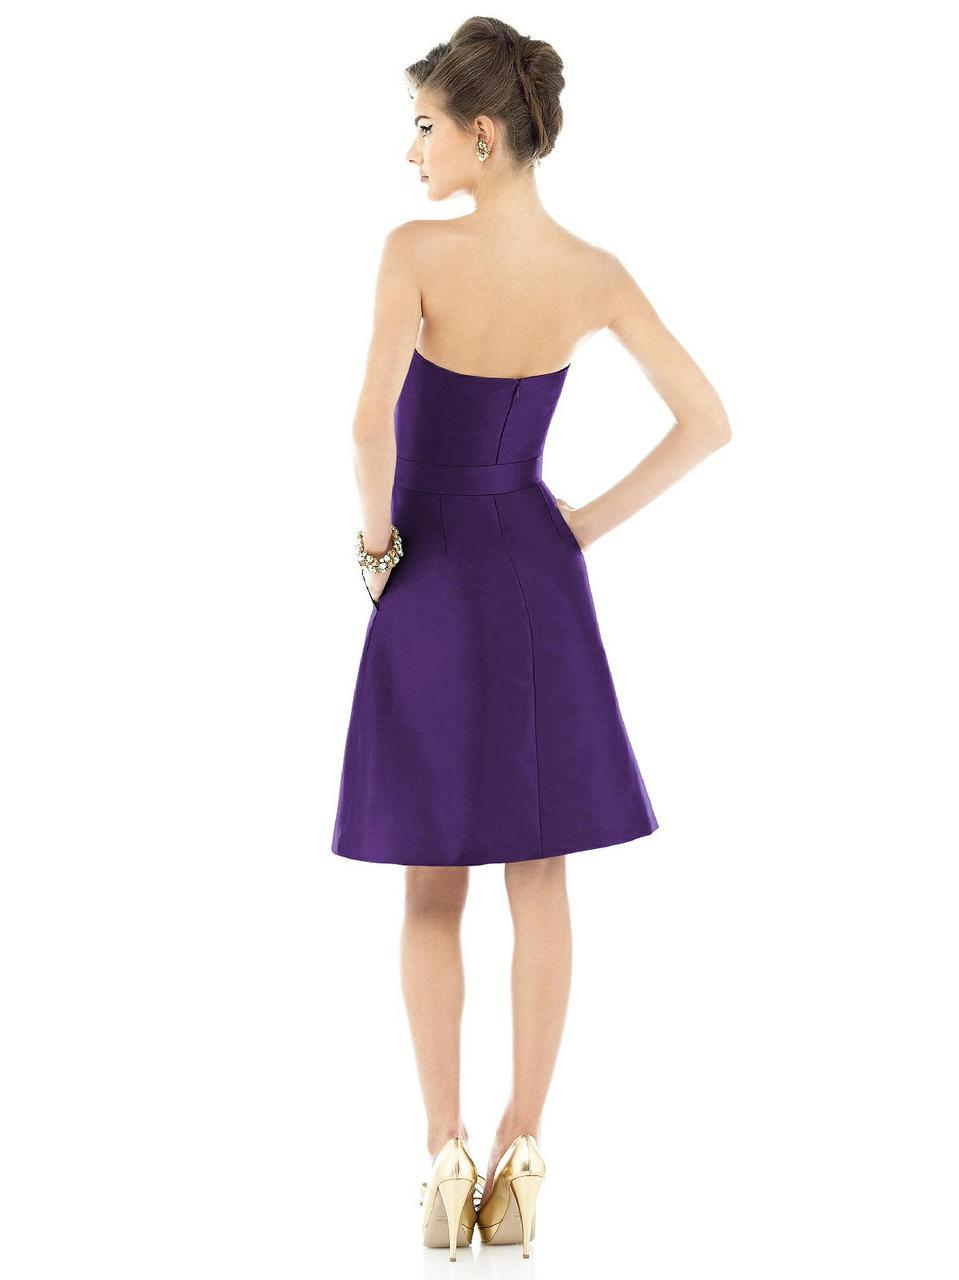 Lyst - Alfred sung D Bridesmaid Dress In Majestic in Purple